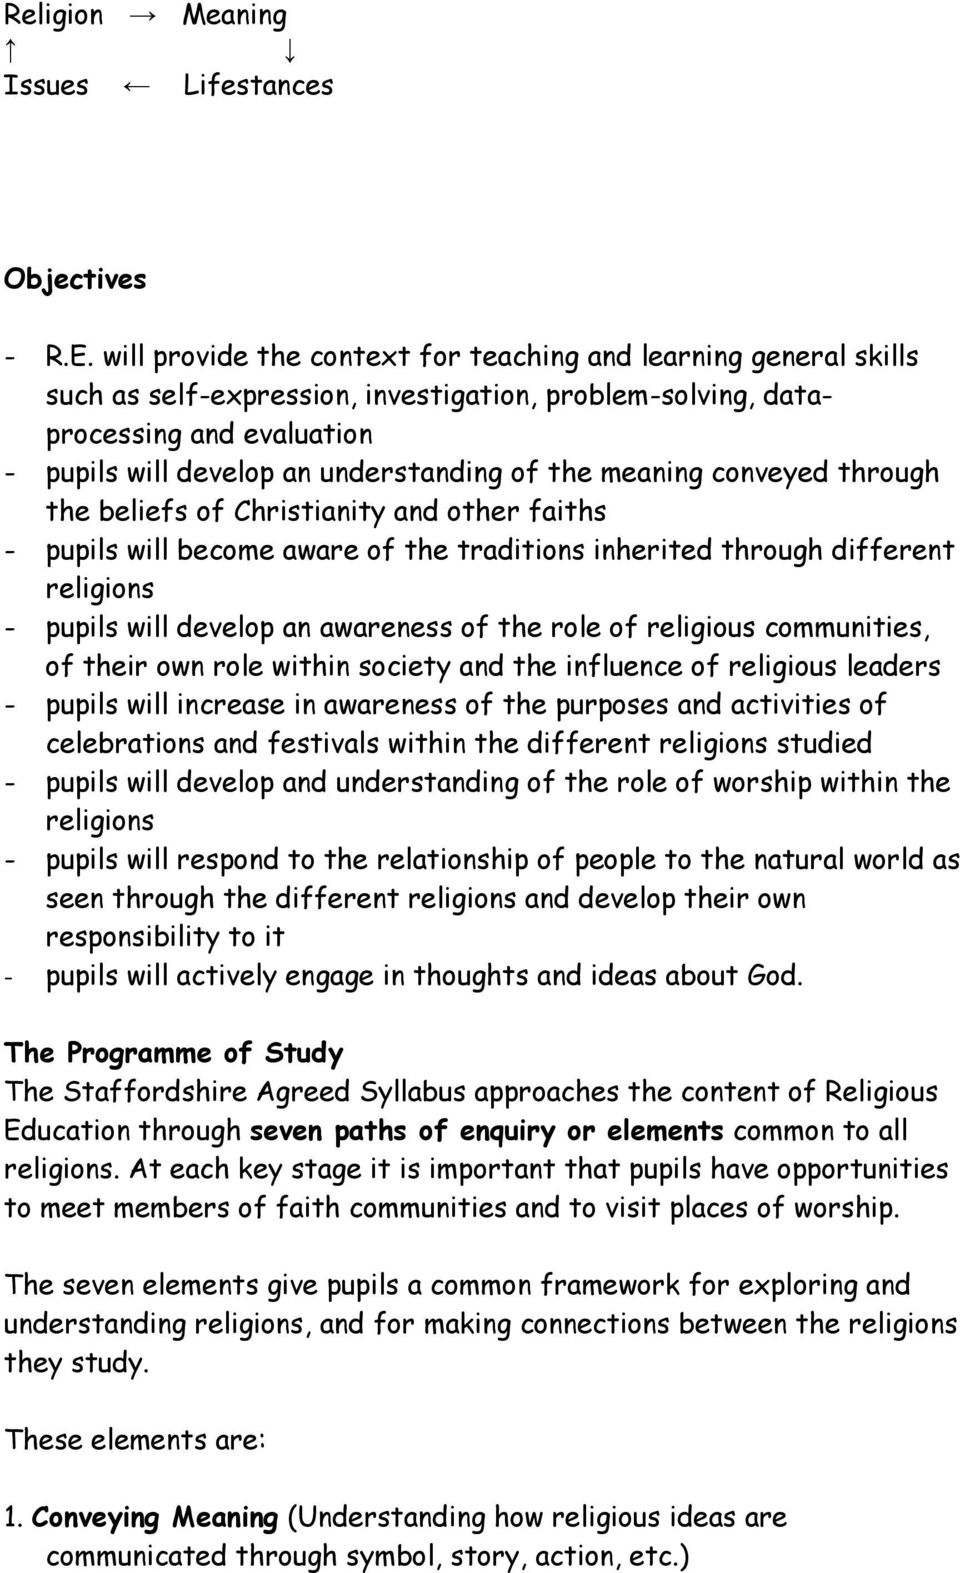 meaning conveyed through the beliefs of Christianity and other faiths - pupils will become aware of the traditions inherited through different religions - pupils will develop an awareness of the role